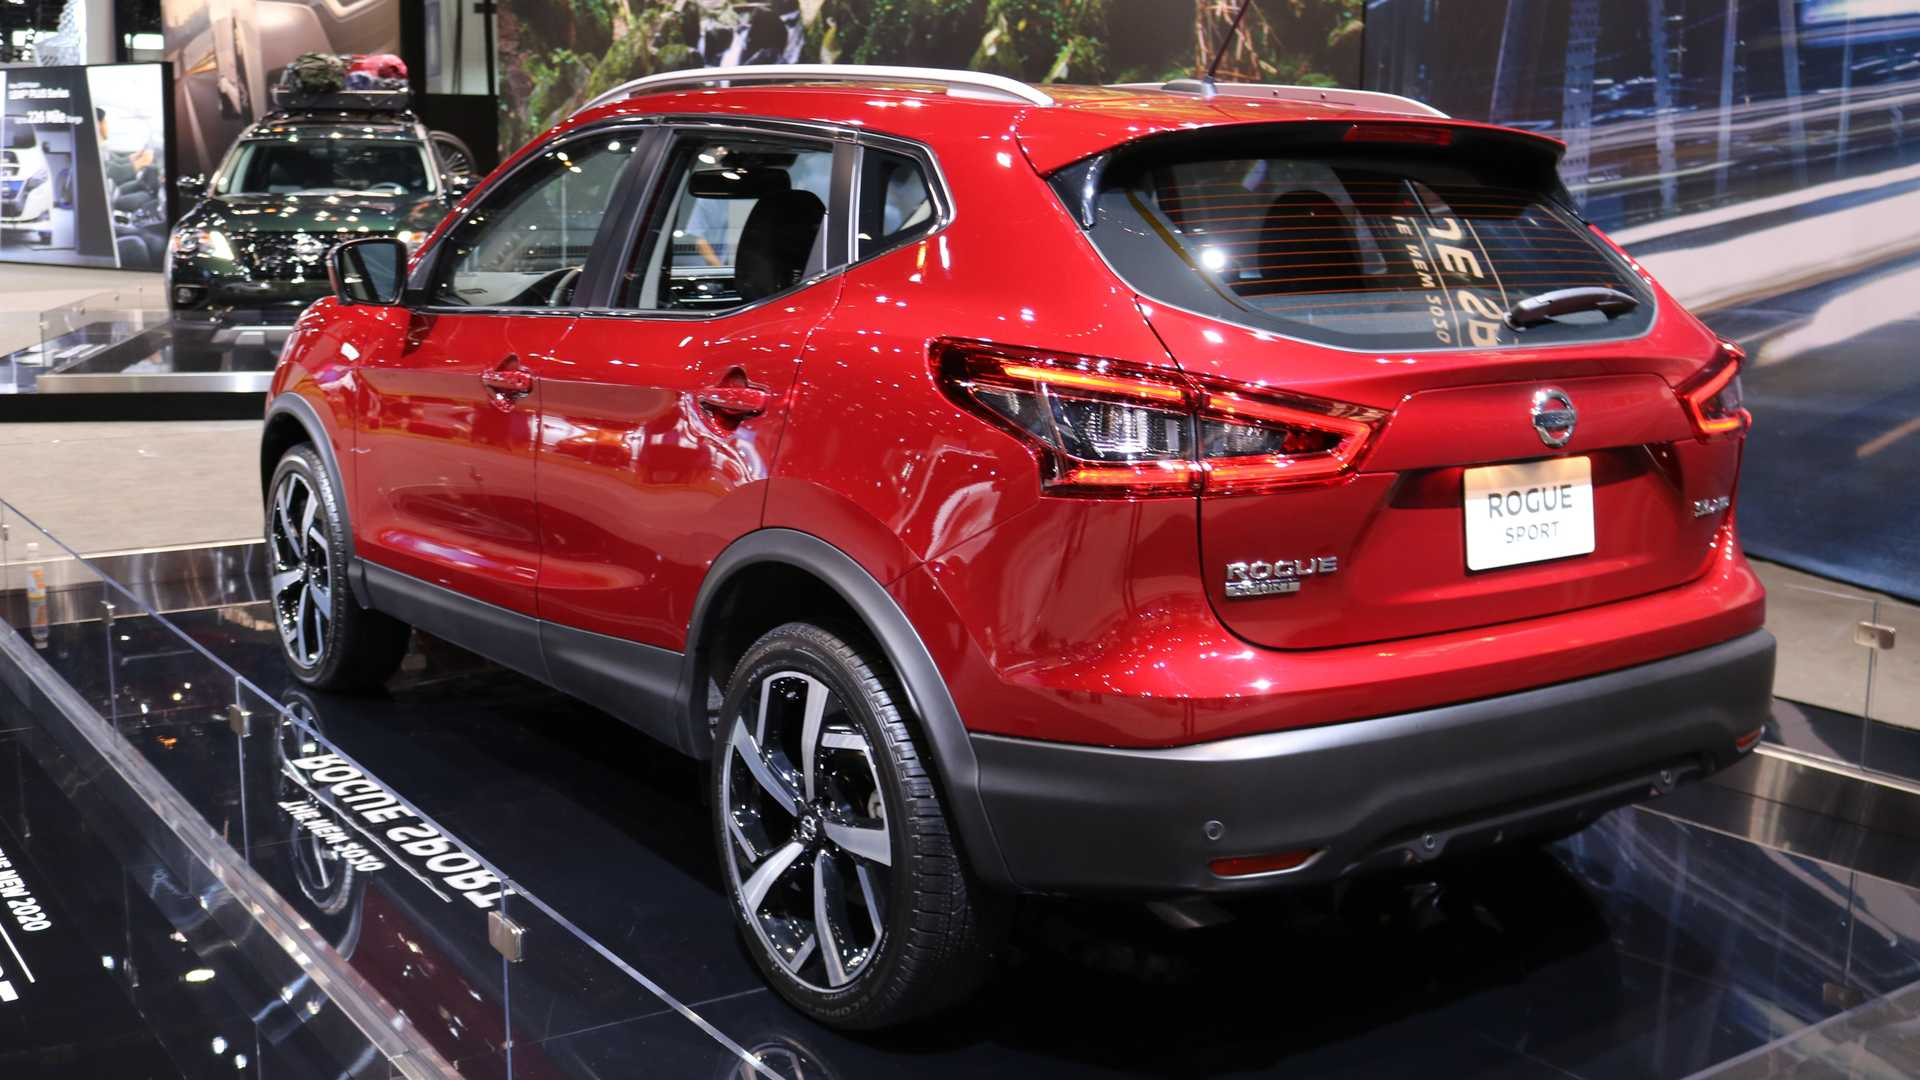 36 The Nissan Rogue 2020 Release Date Exterior and Interior by Nissan Rogue 2020 Release Date